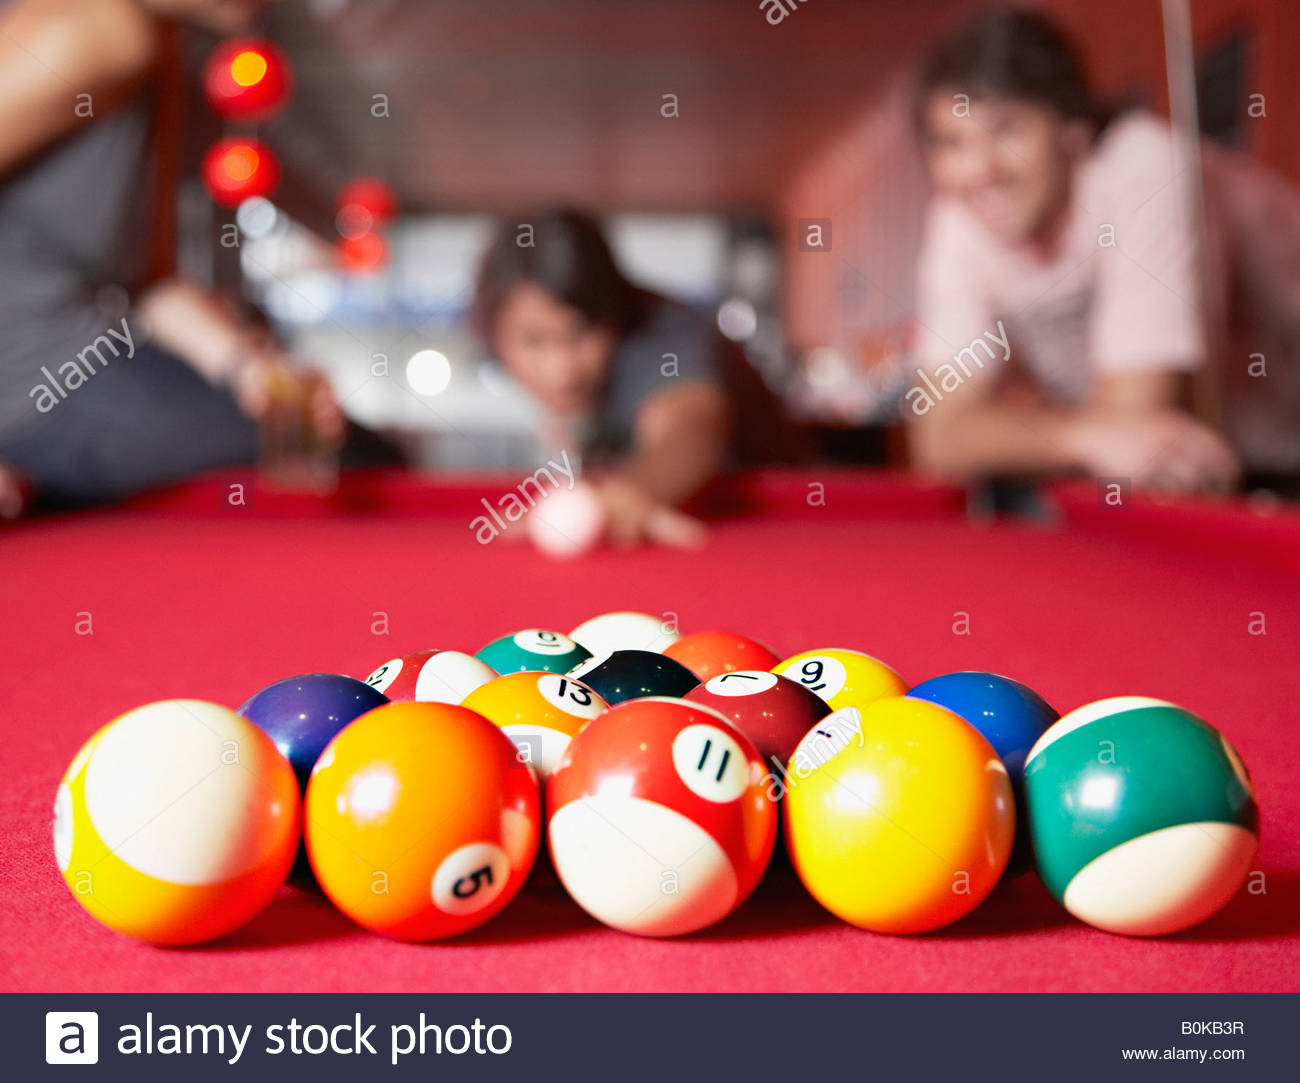 three people playing pool focussing on pool balls - Stock Image